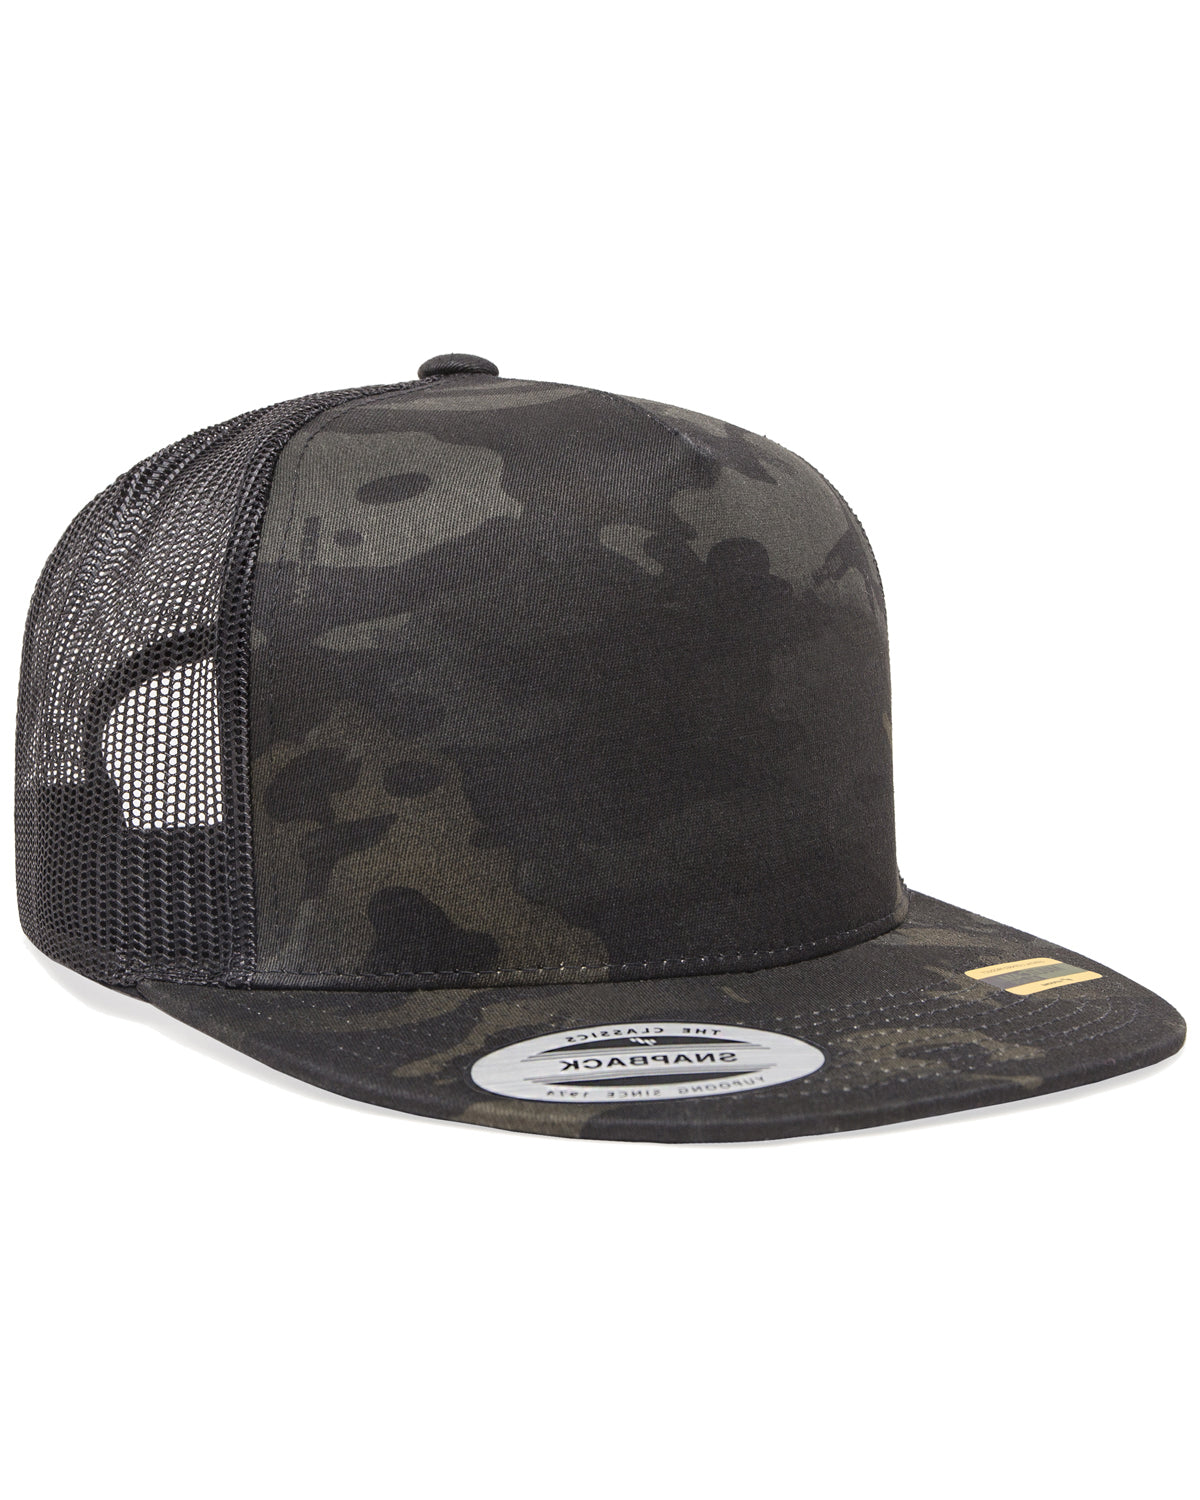 Yupoong Classics™ Adult 5-Panel Multicam® Trucker Cap 6006MC